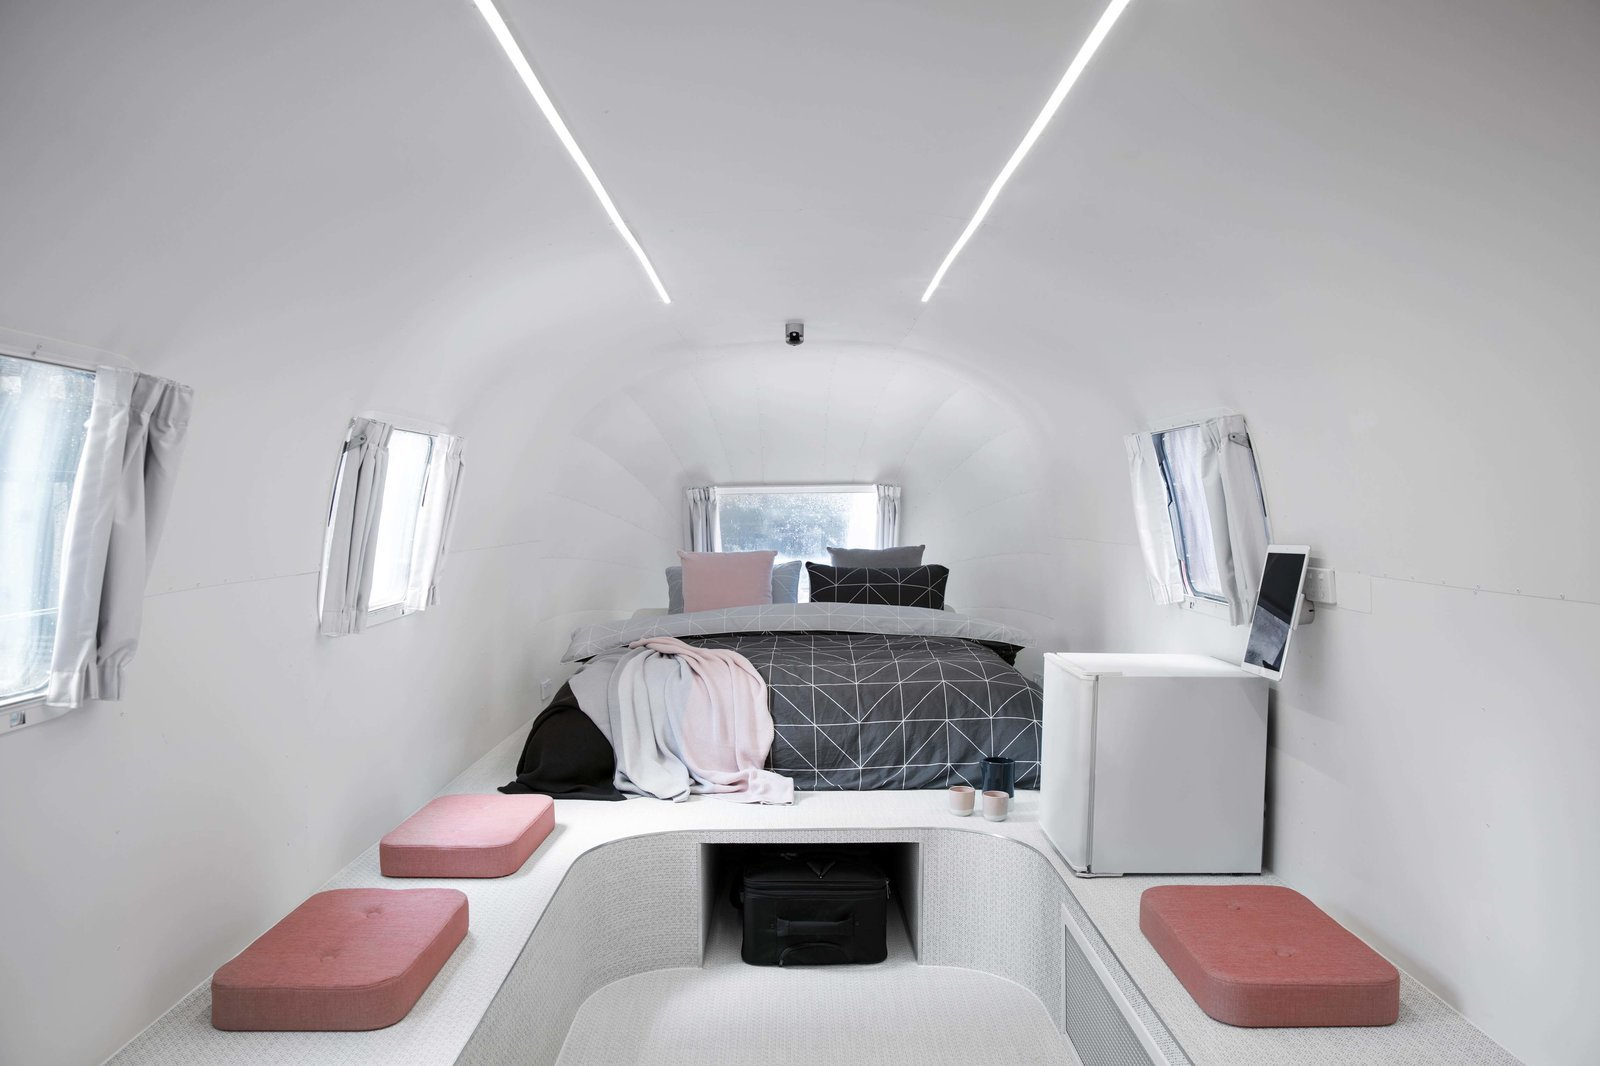 Airstream trailer bedroom with two ceiling fluorescent strip lights.